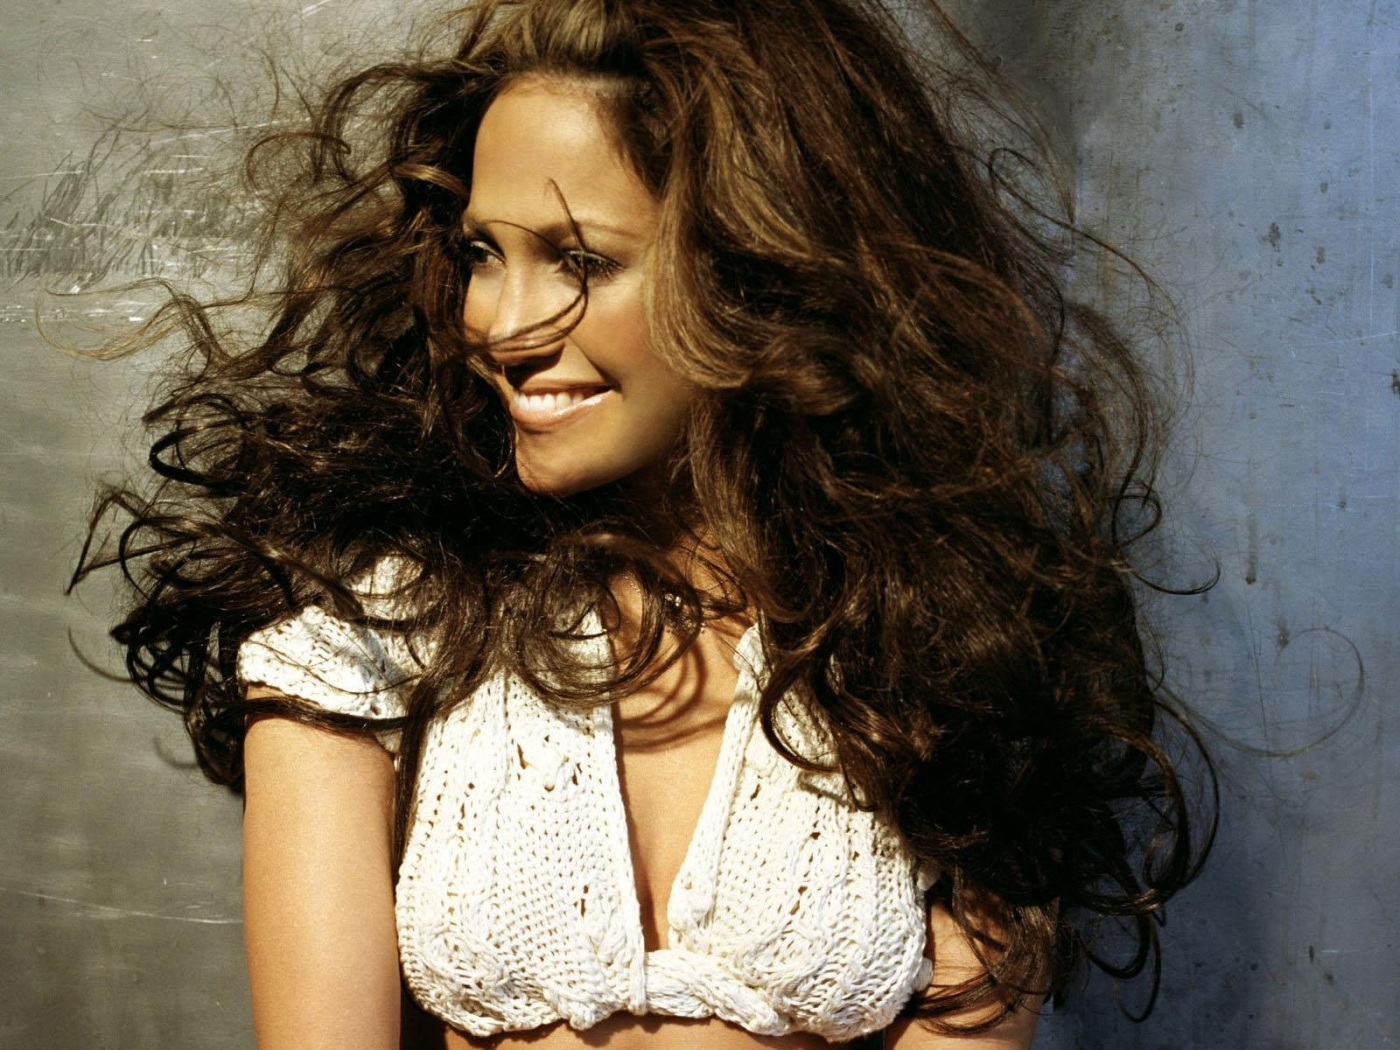 49509 download wallpaper People, Girls, Jennifer Lopez screensavers and pictures for free